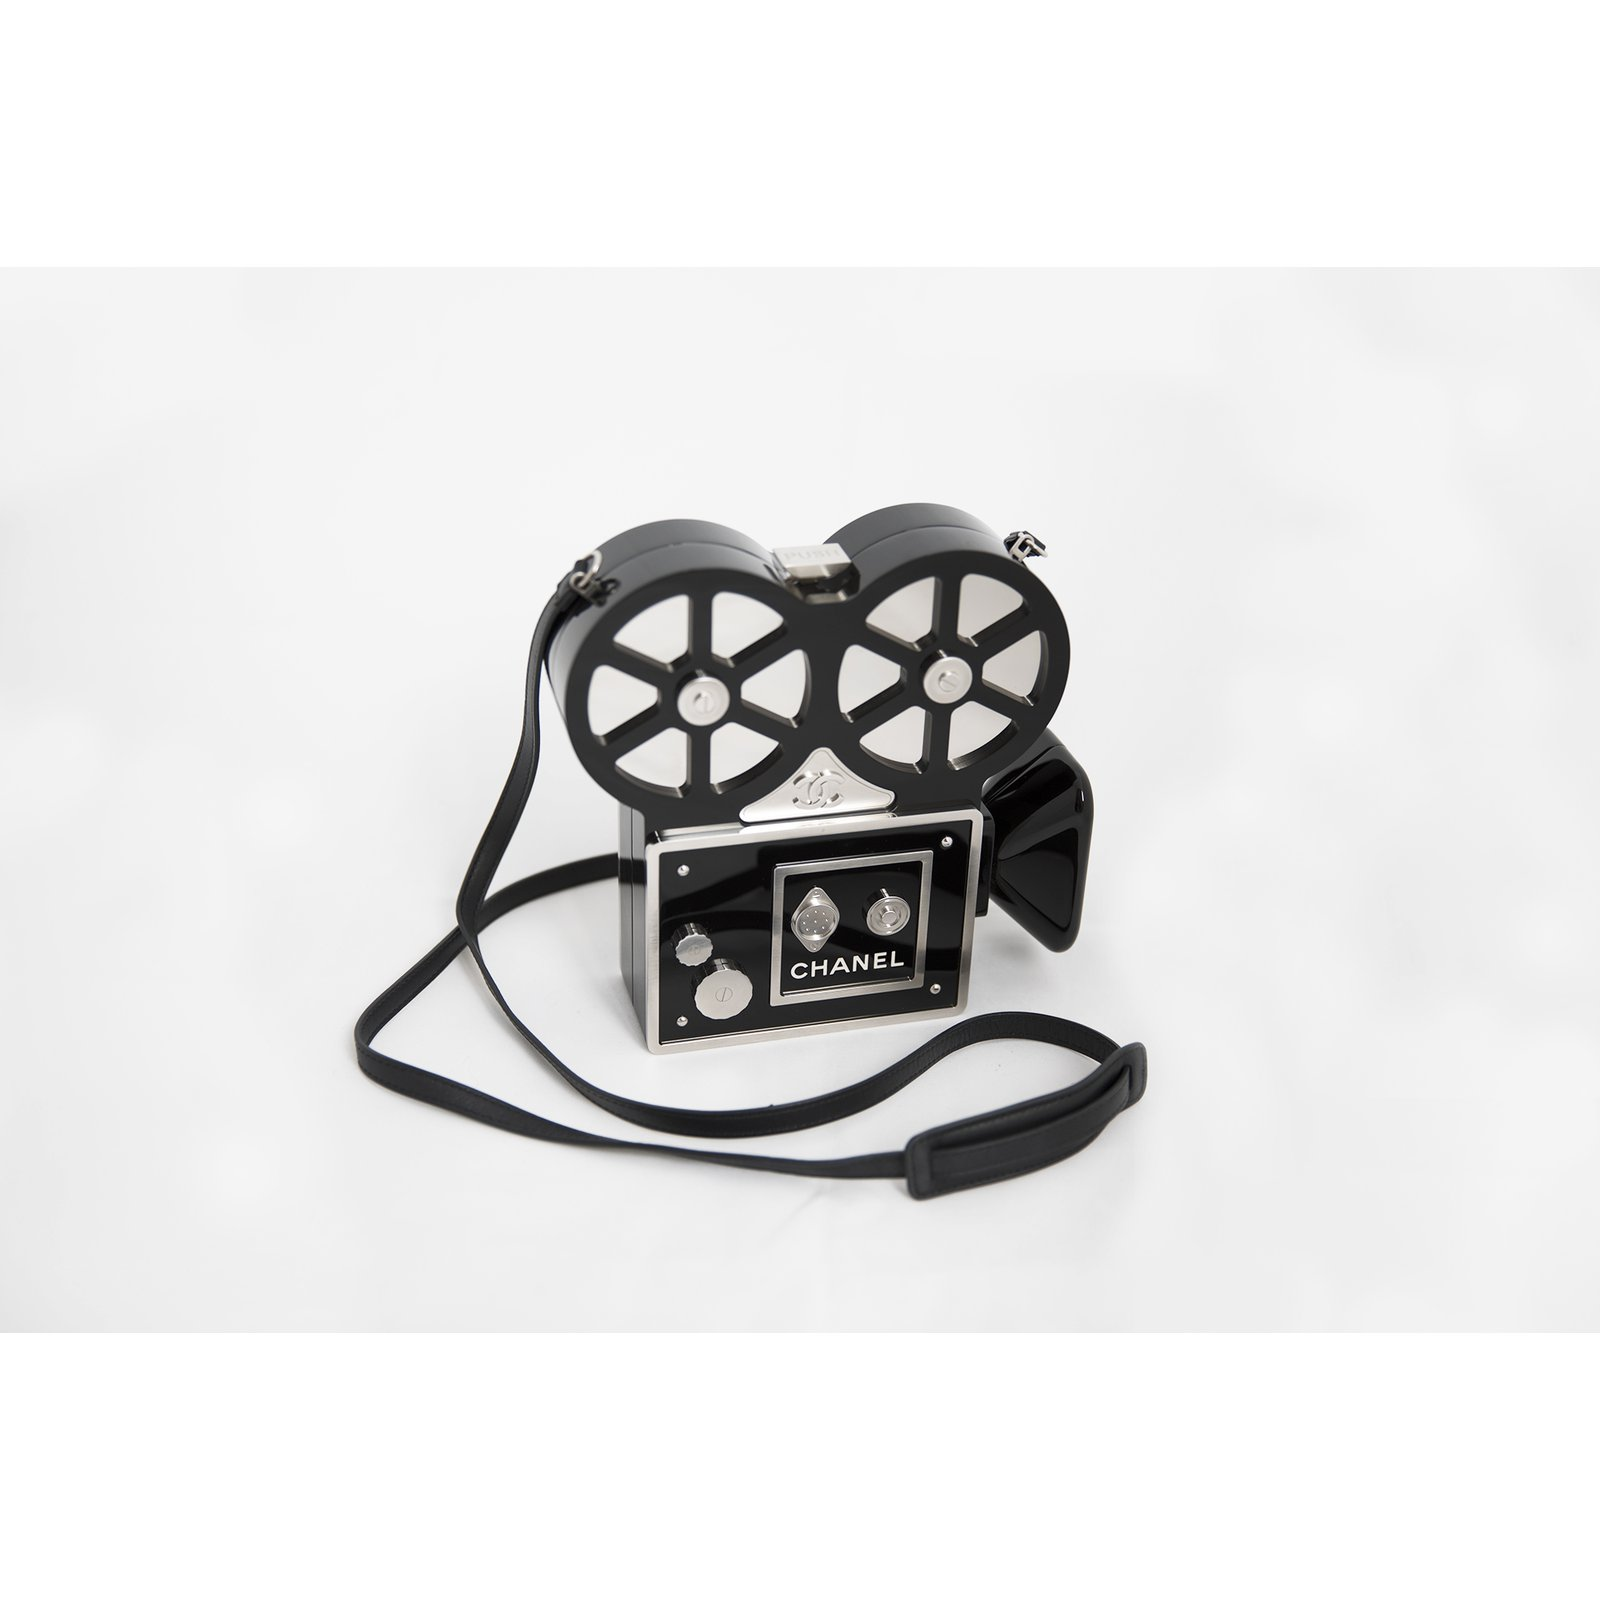 7276ab58c038 Chanel CHANEL 16A Pre-Fall 2016 Rome Collection Film Camera Minaudière  Handbags Leather,Other Black,Silvery ref.51095 - Joli Closet